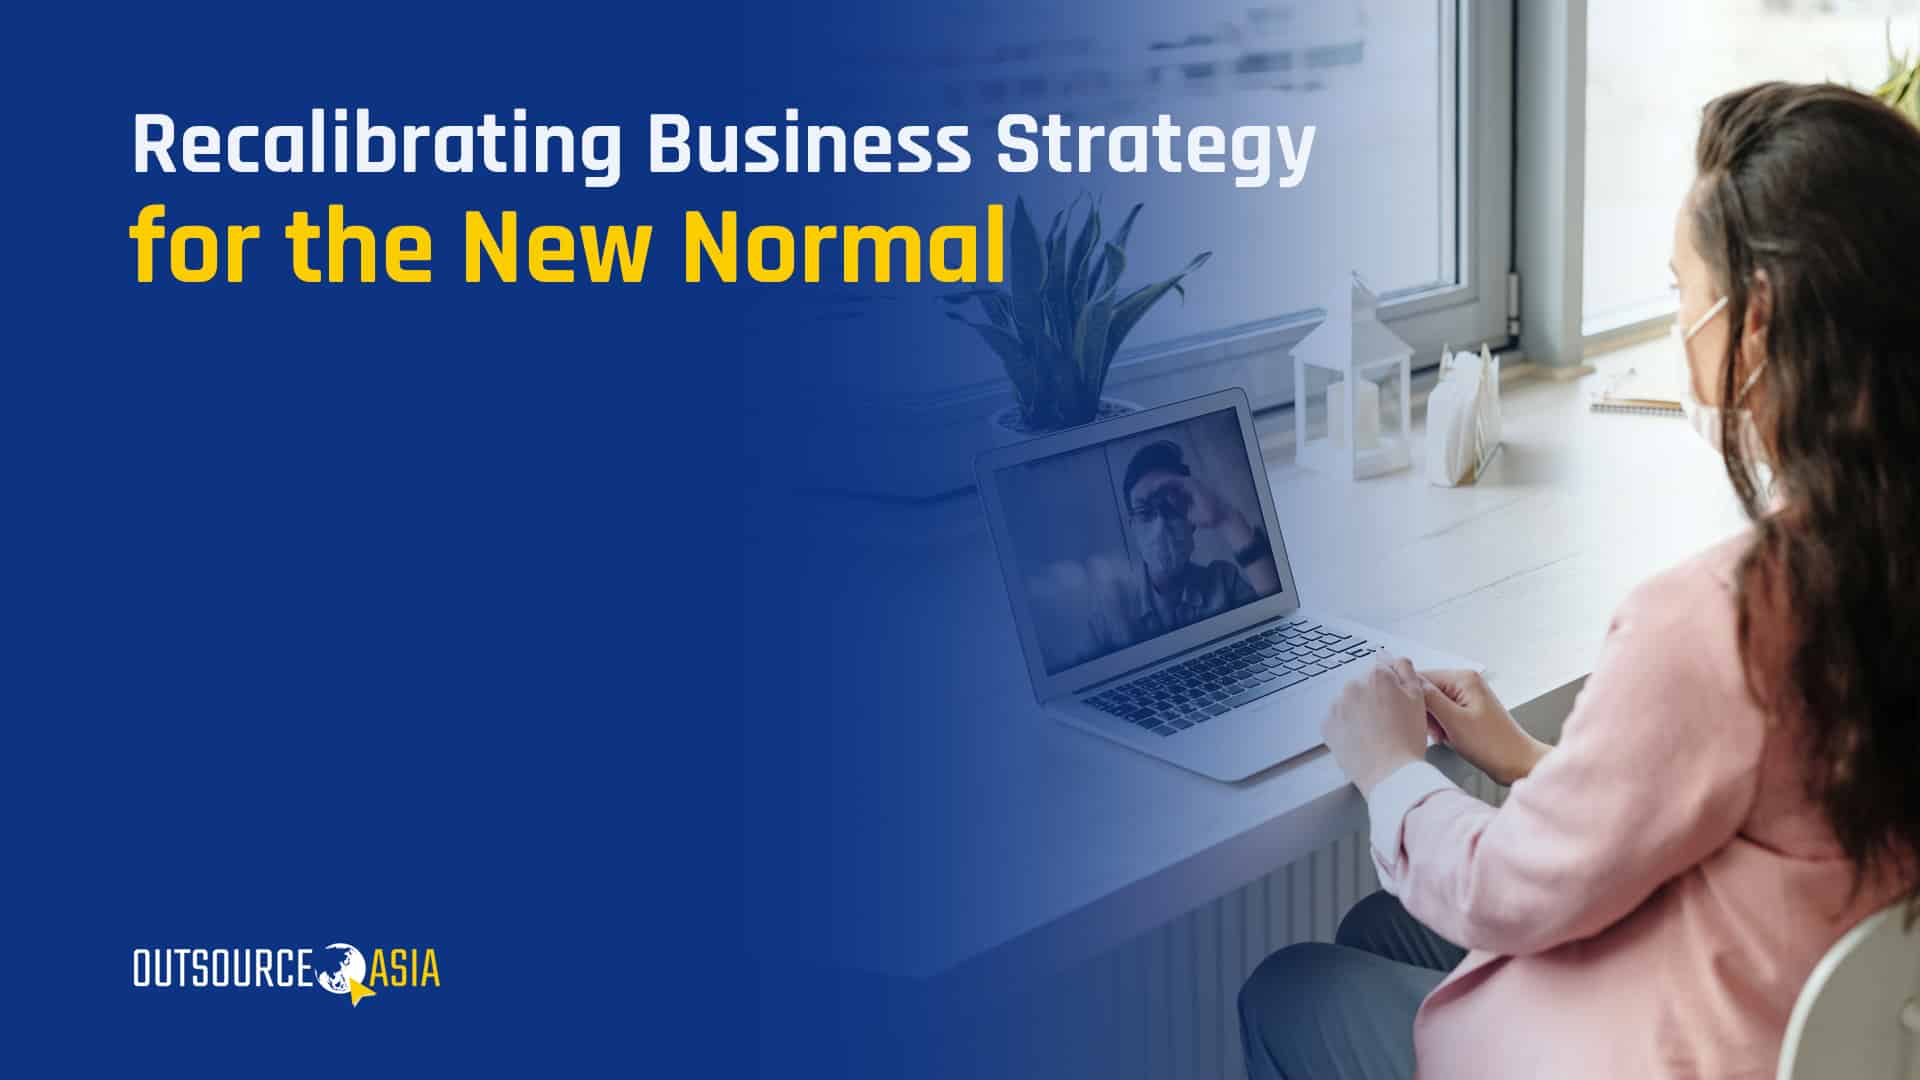 Business Strategy for the New Normal